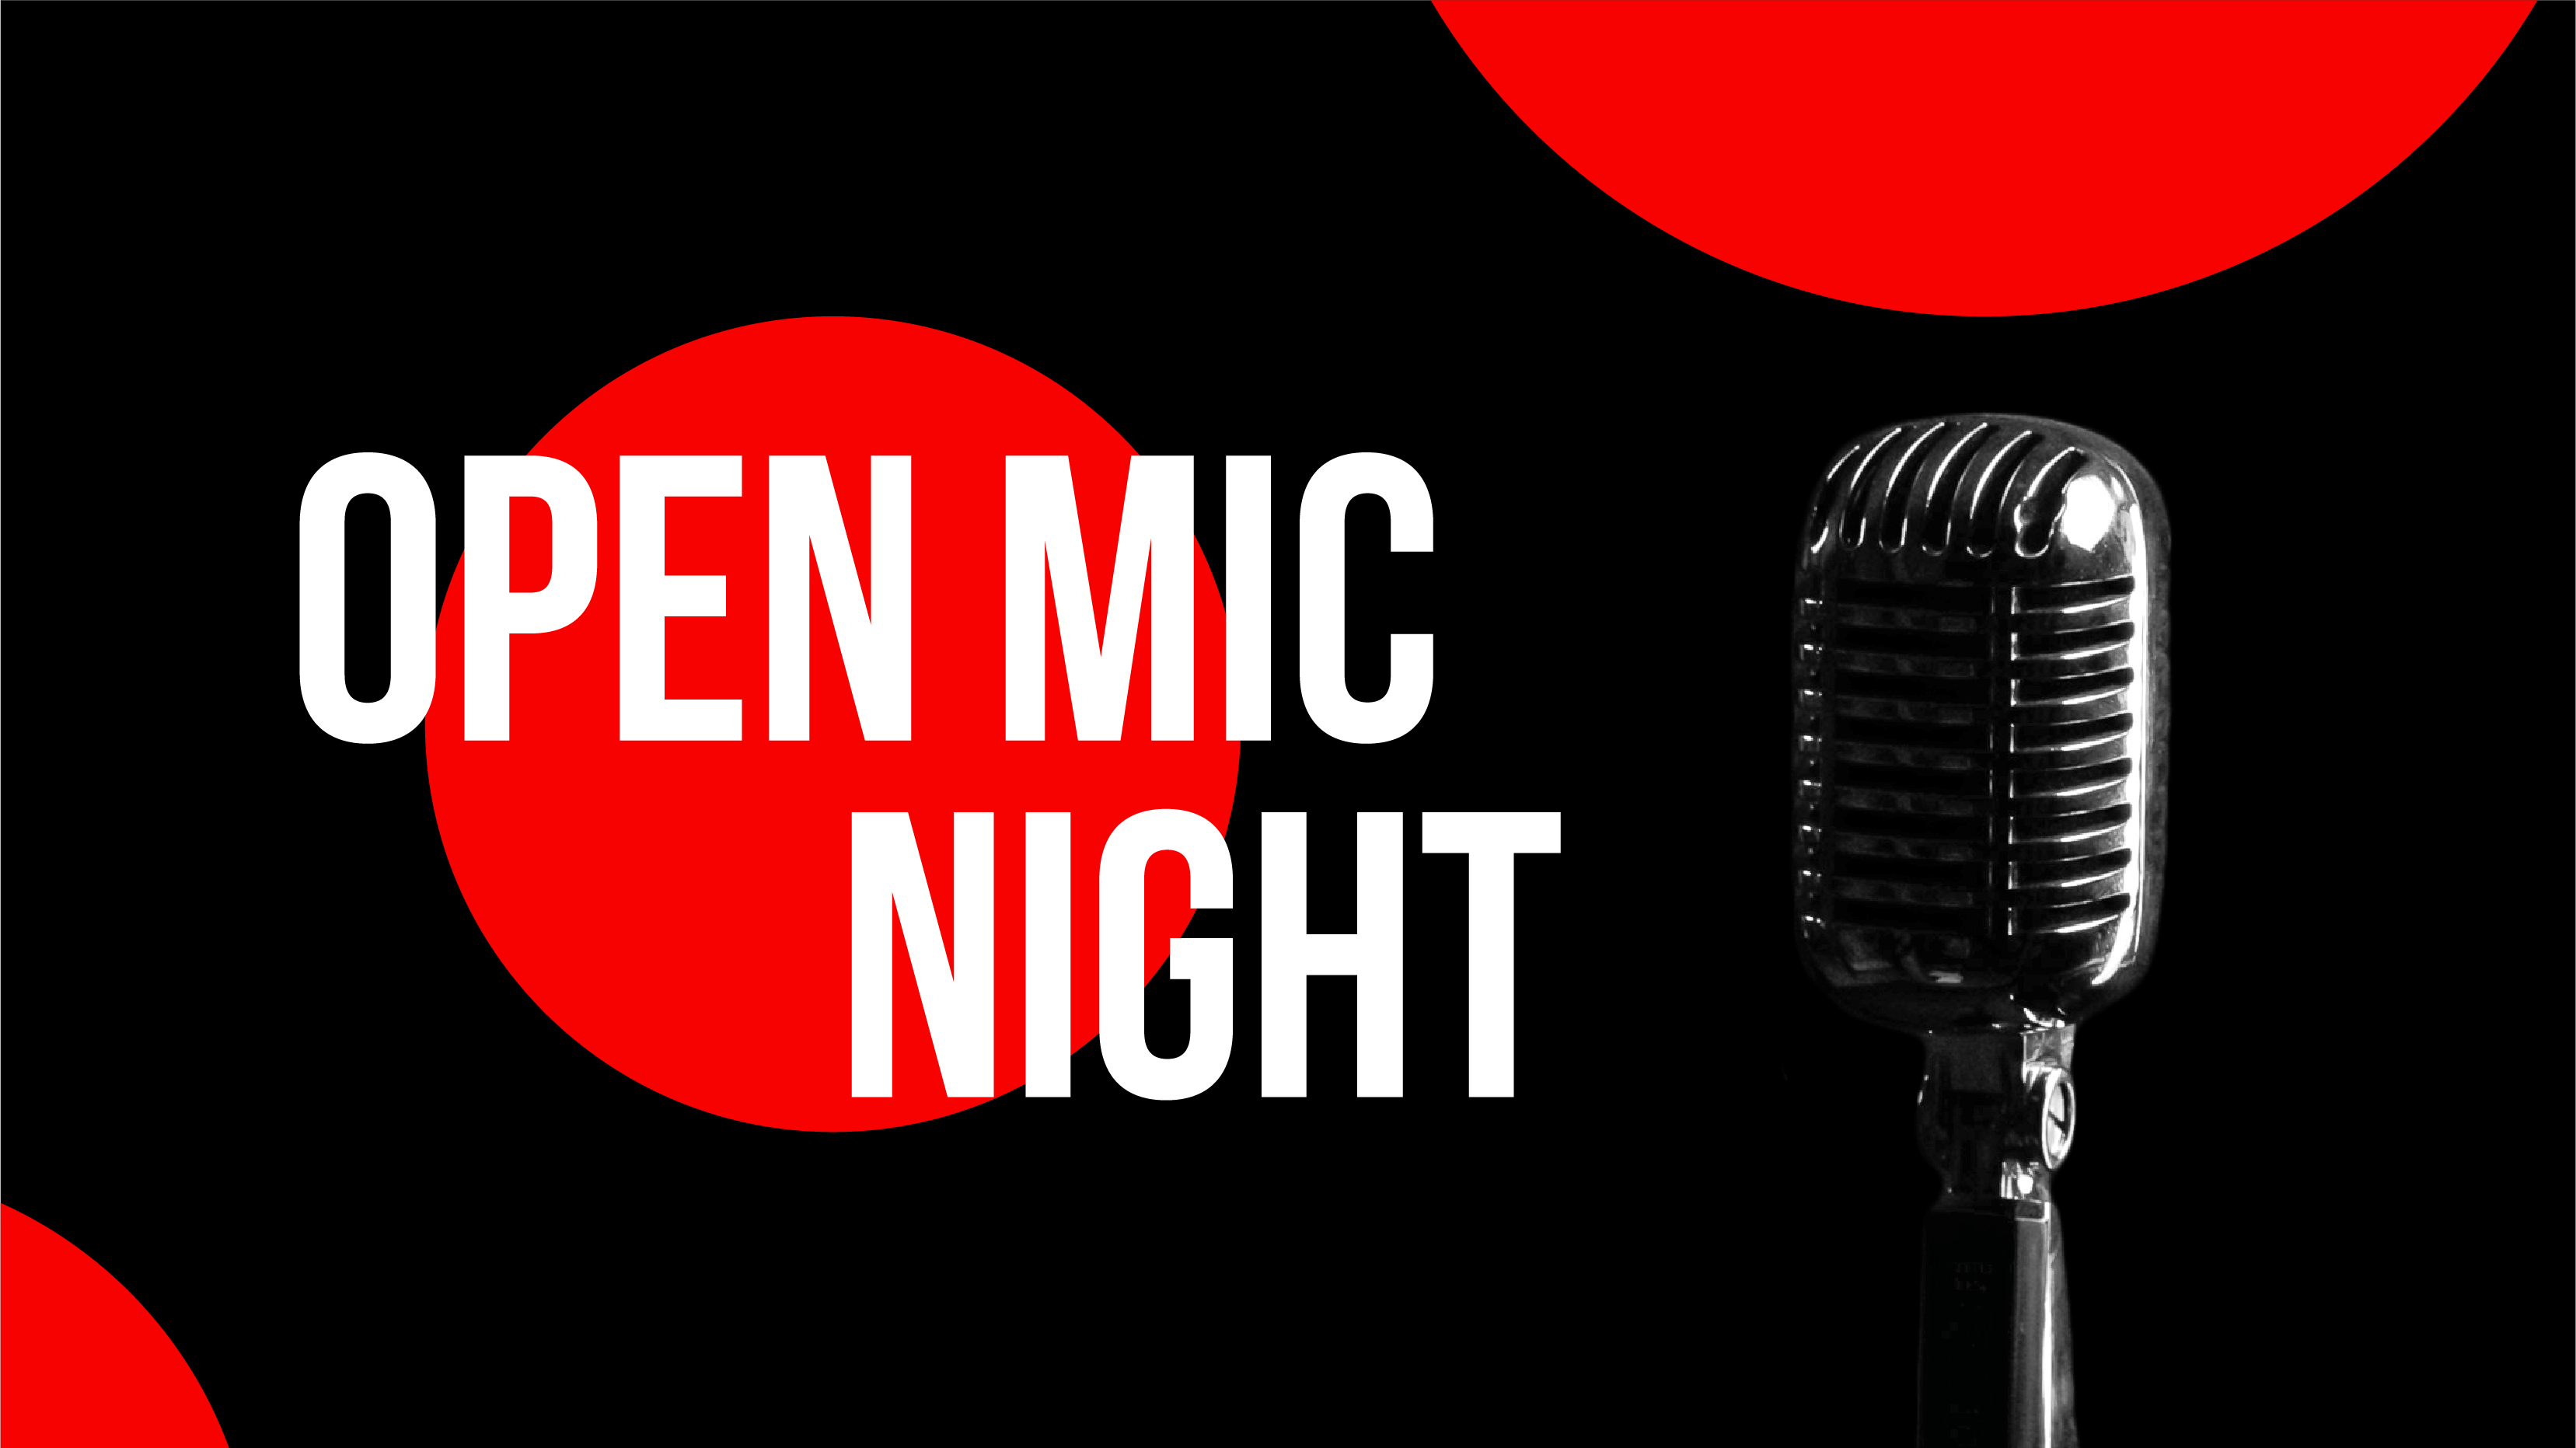 Tue 19 January 2021 Open Mic